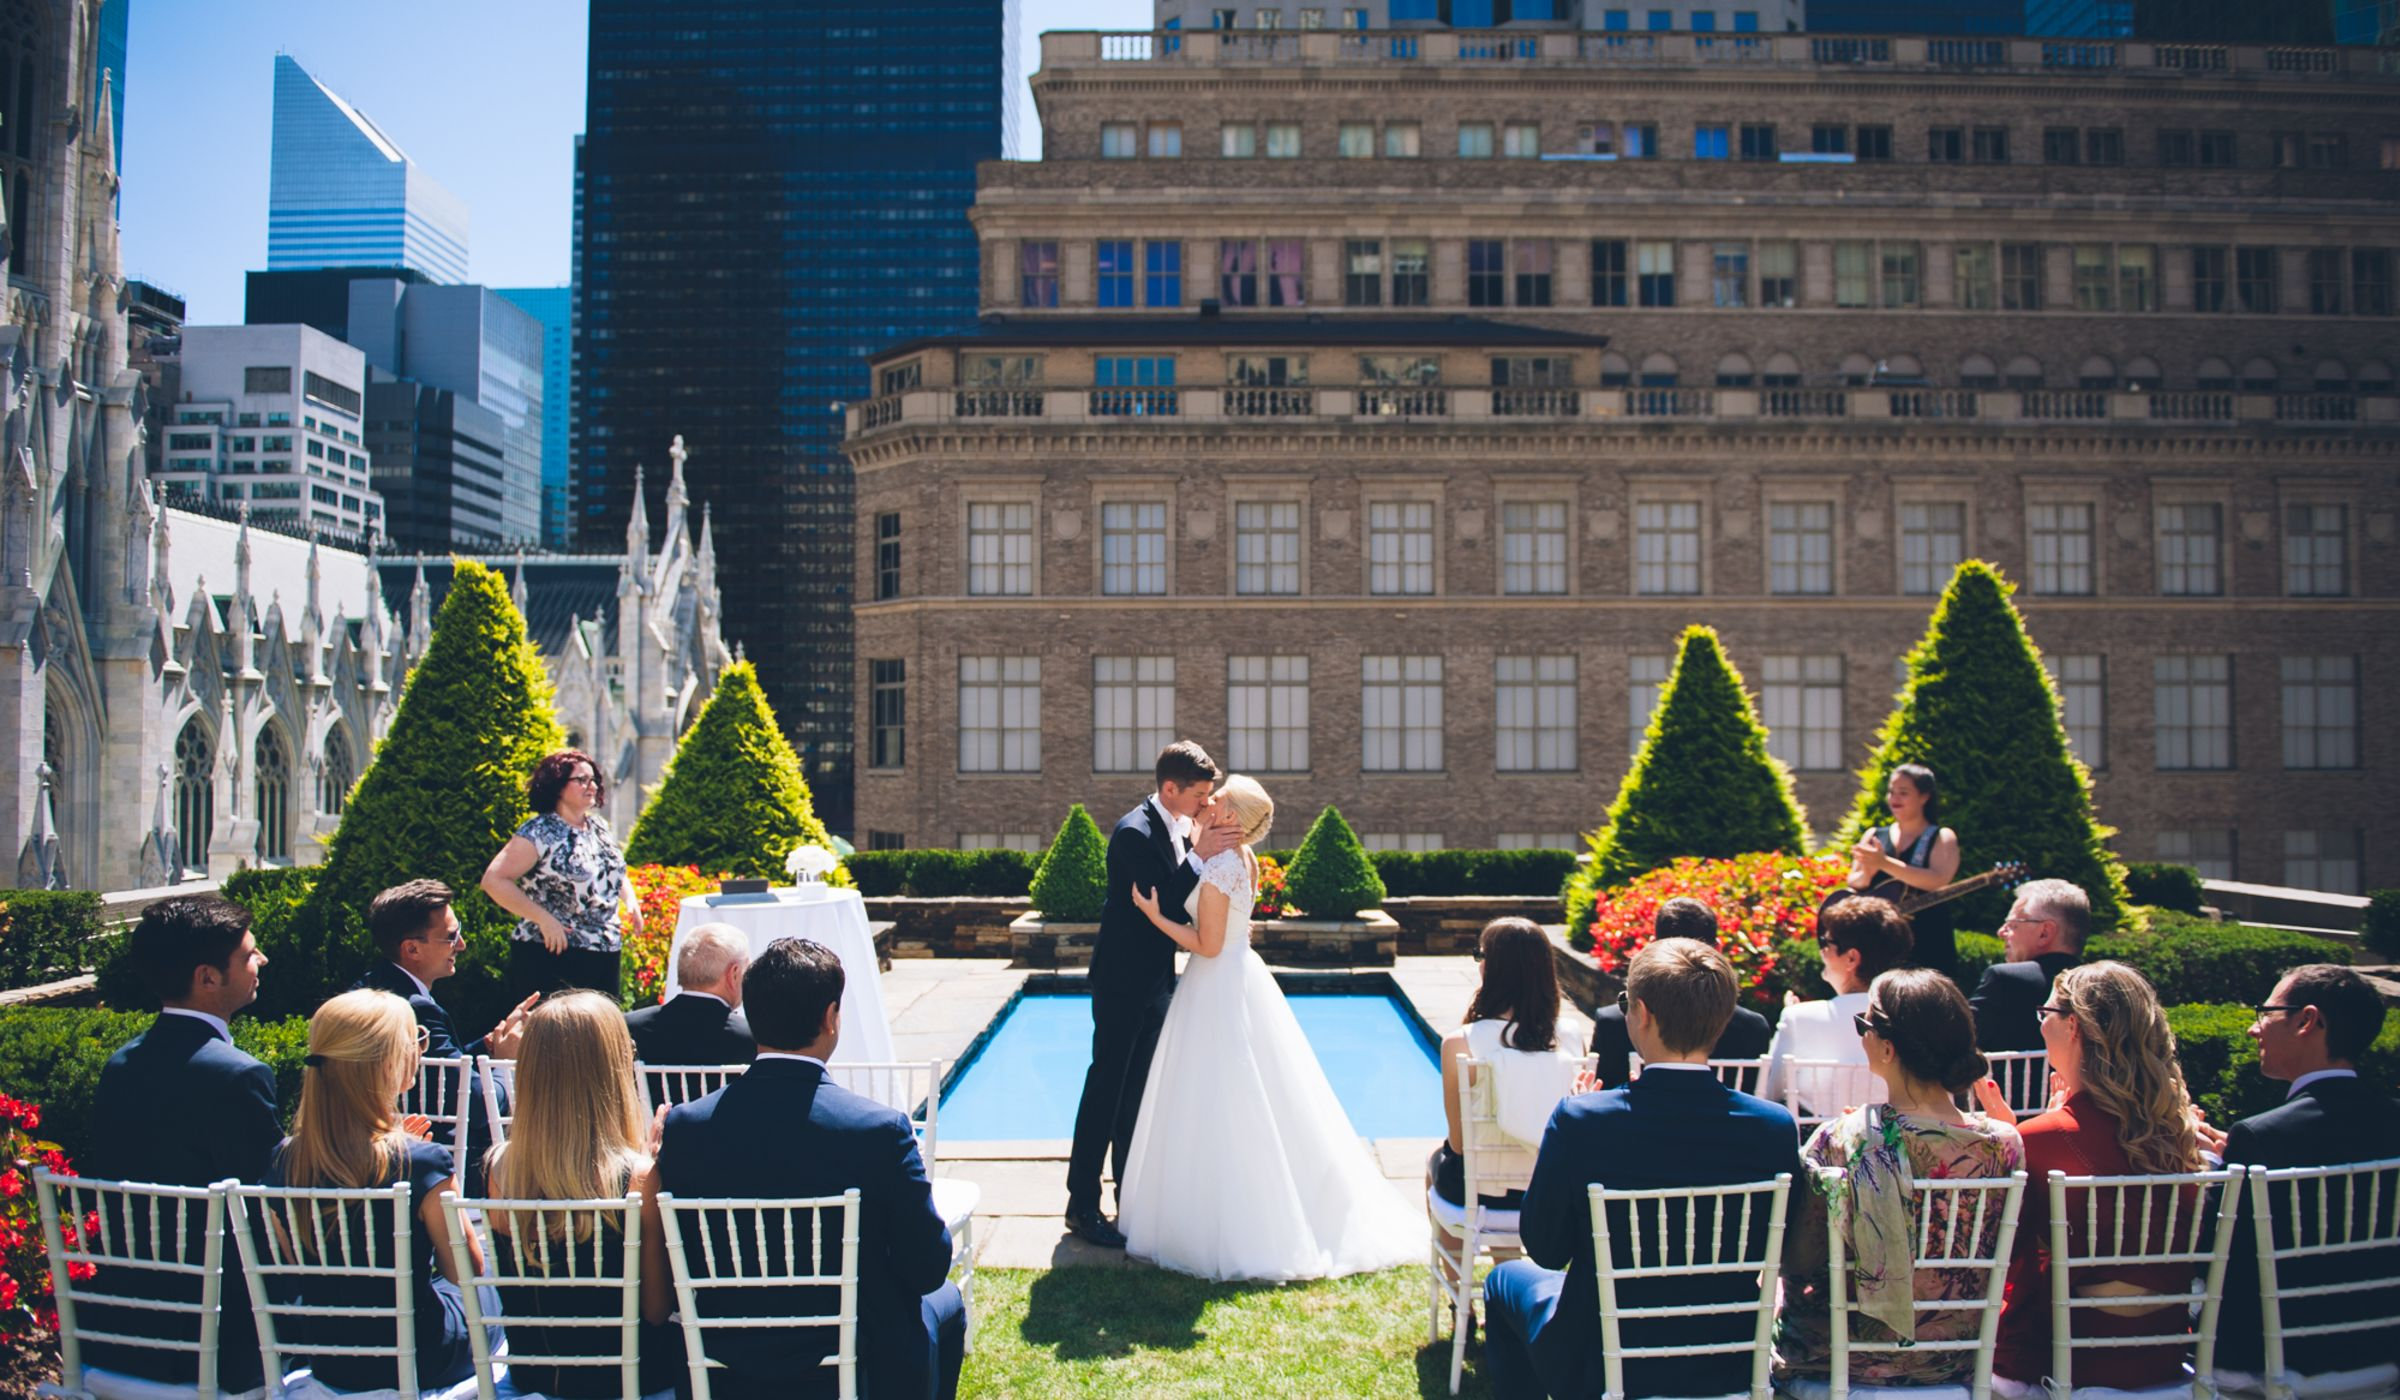 10 outdoor wedding venues in new york city weddingwire for Outdoor wedding venues ny